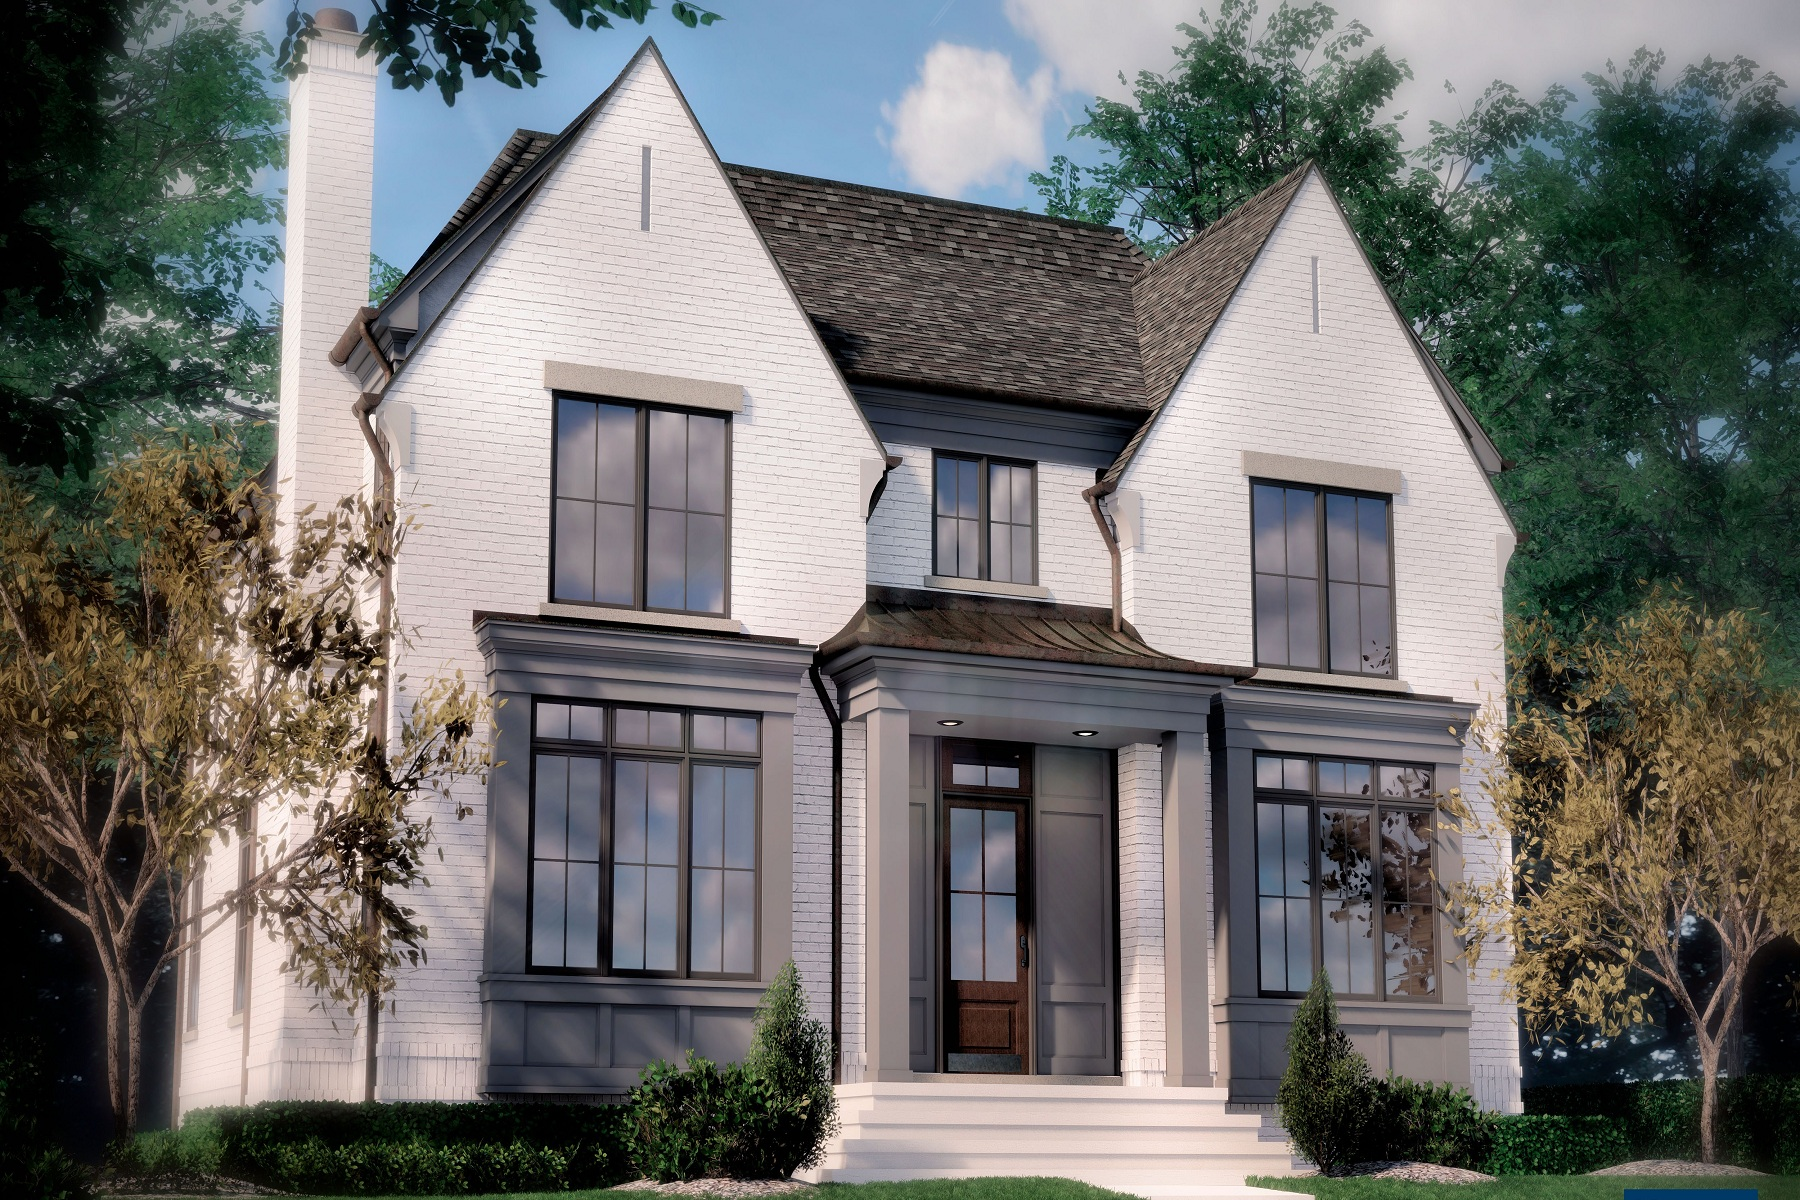 Single Family Homes for Active at Birmingham 608 Stanley Blvd. Birmingham, Michigan 48009 United States